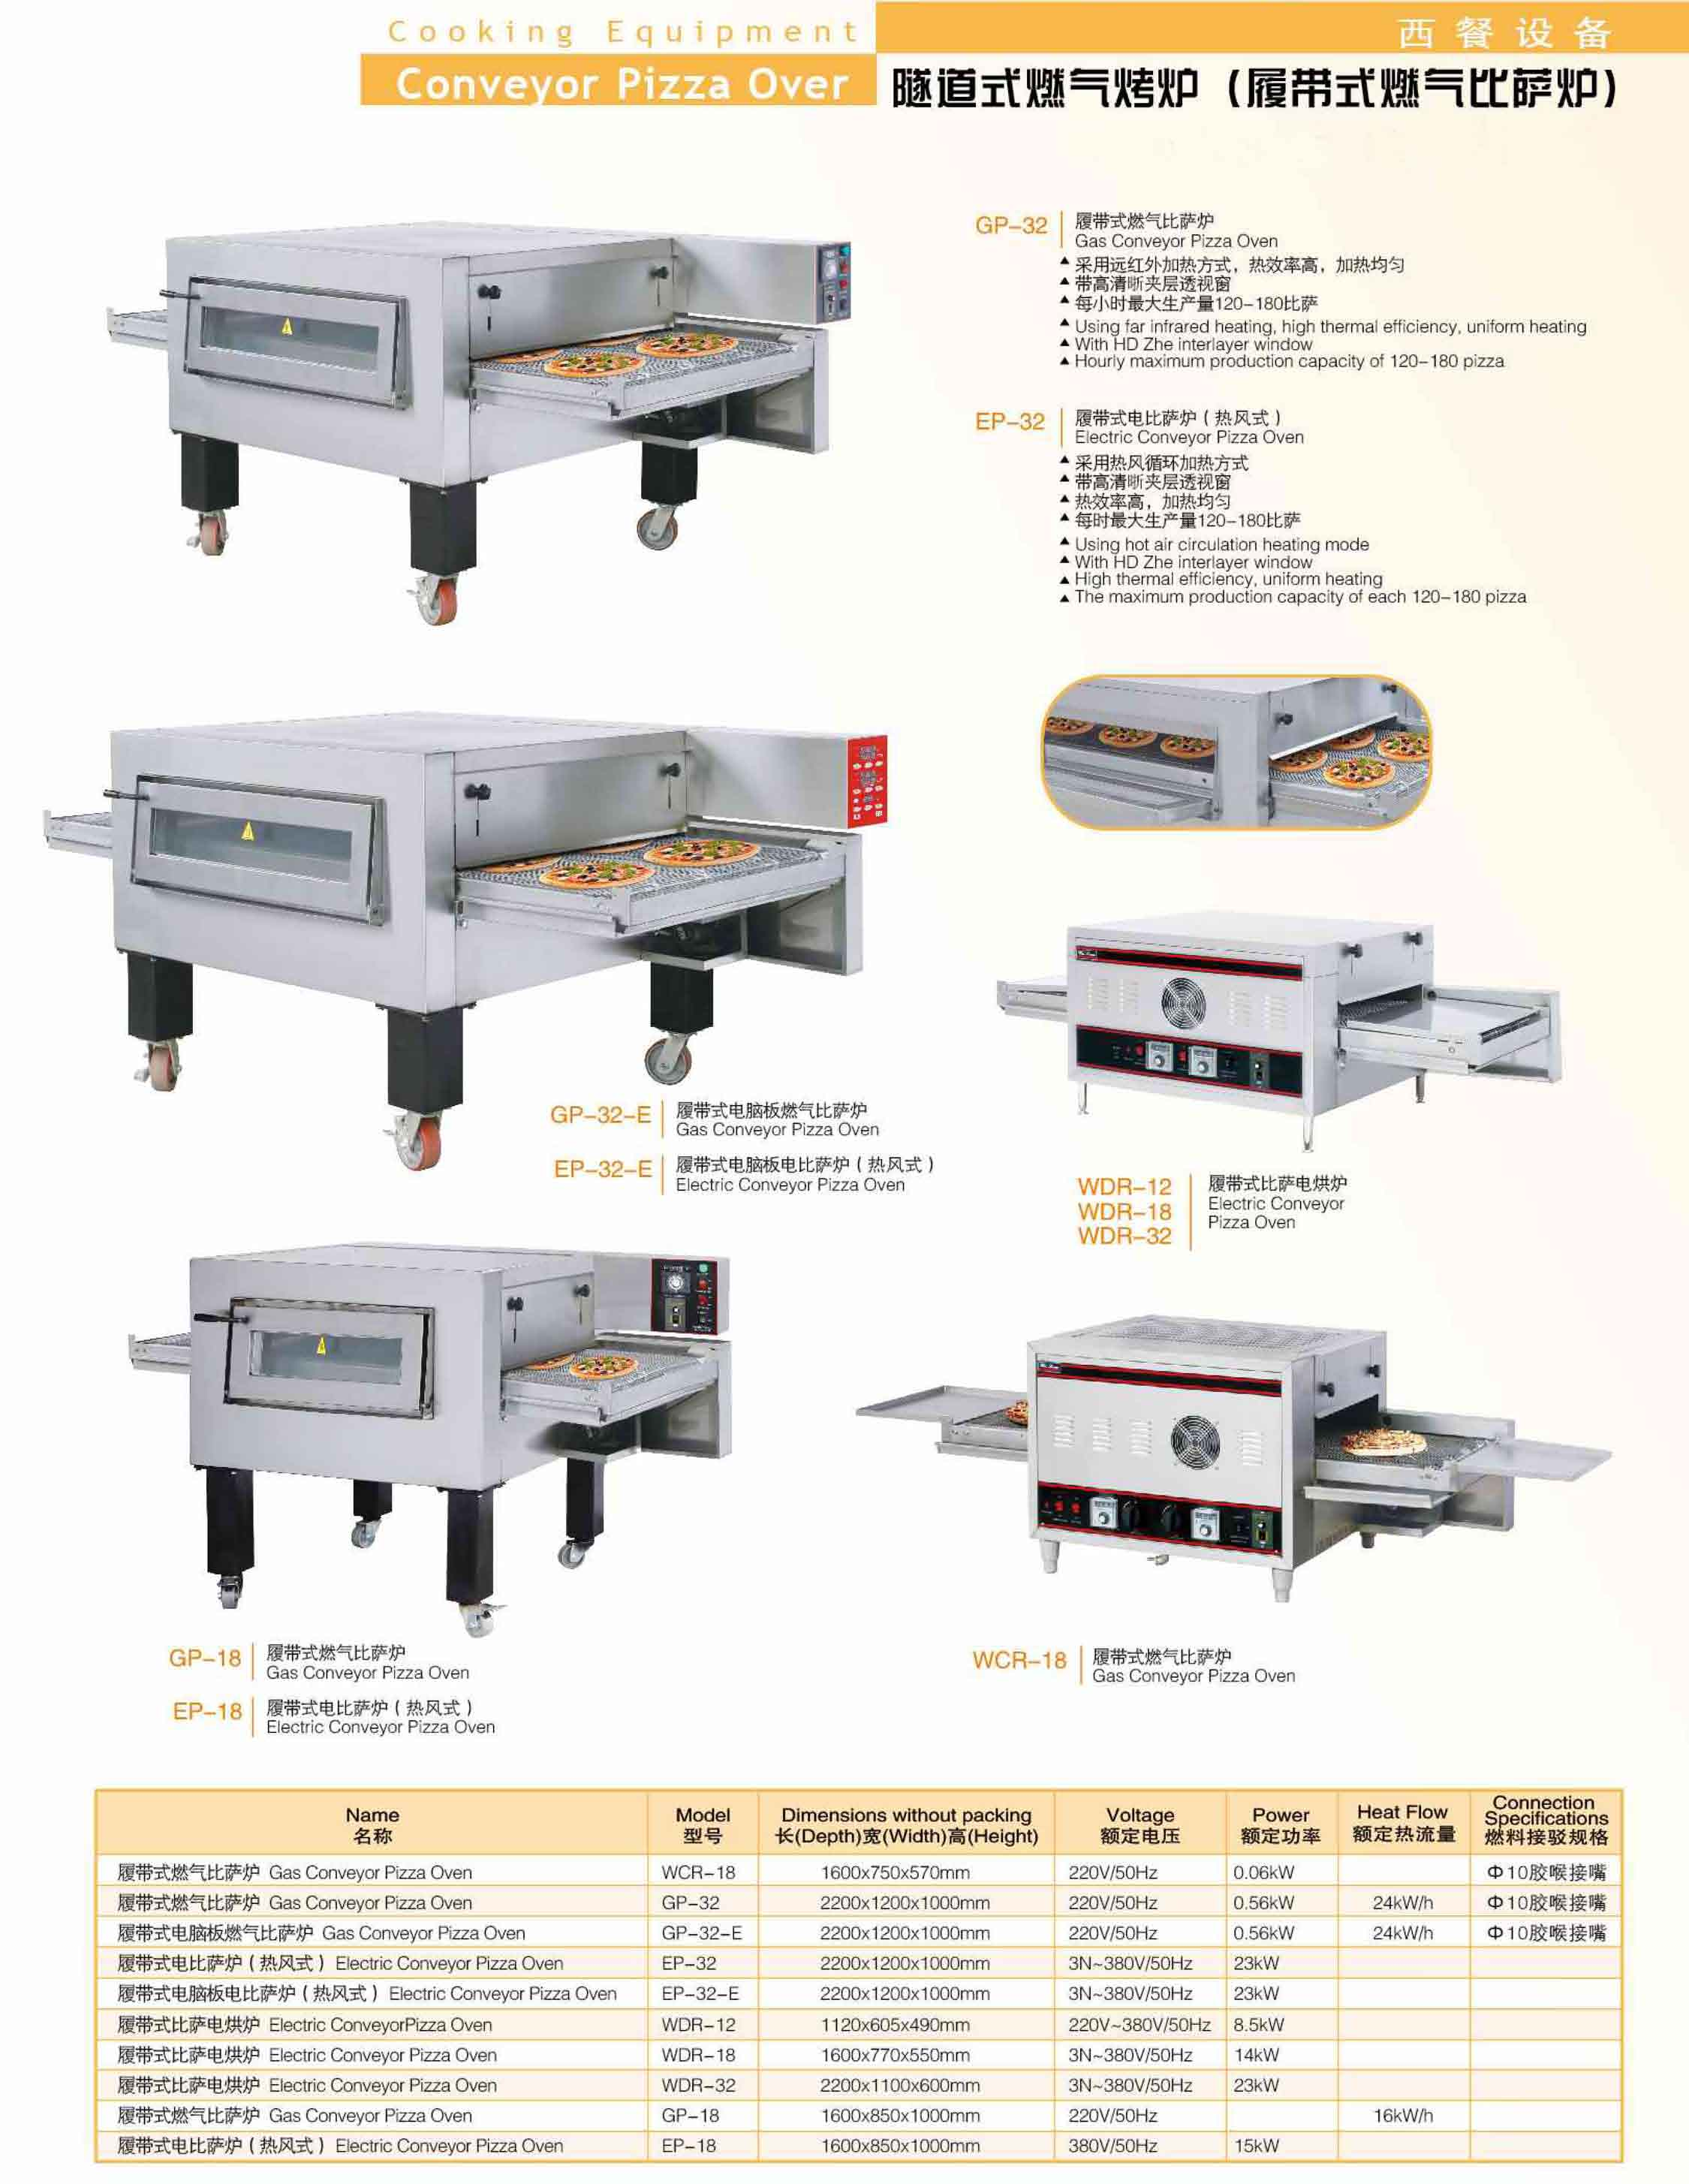 Catalogue For Conveyor Pizza Oven From Franky